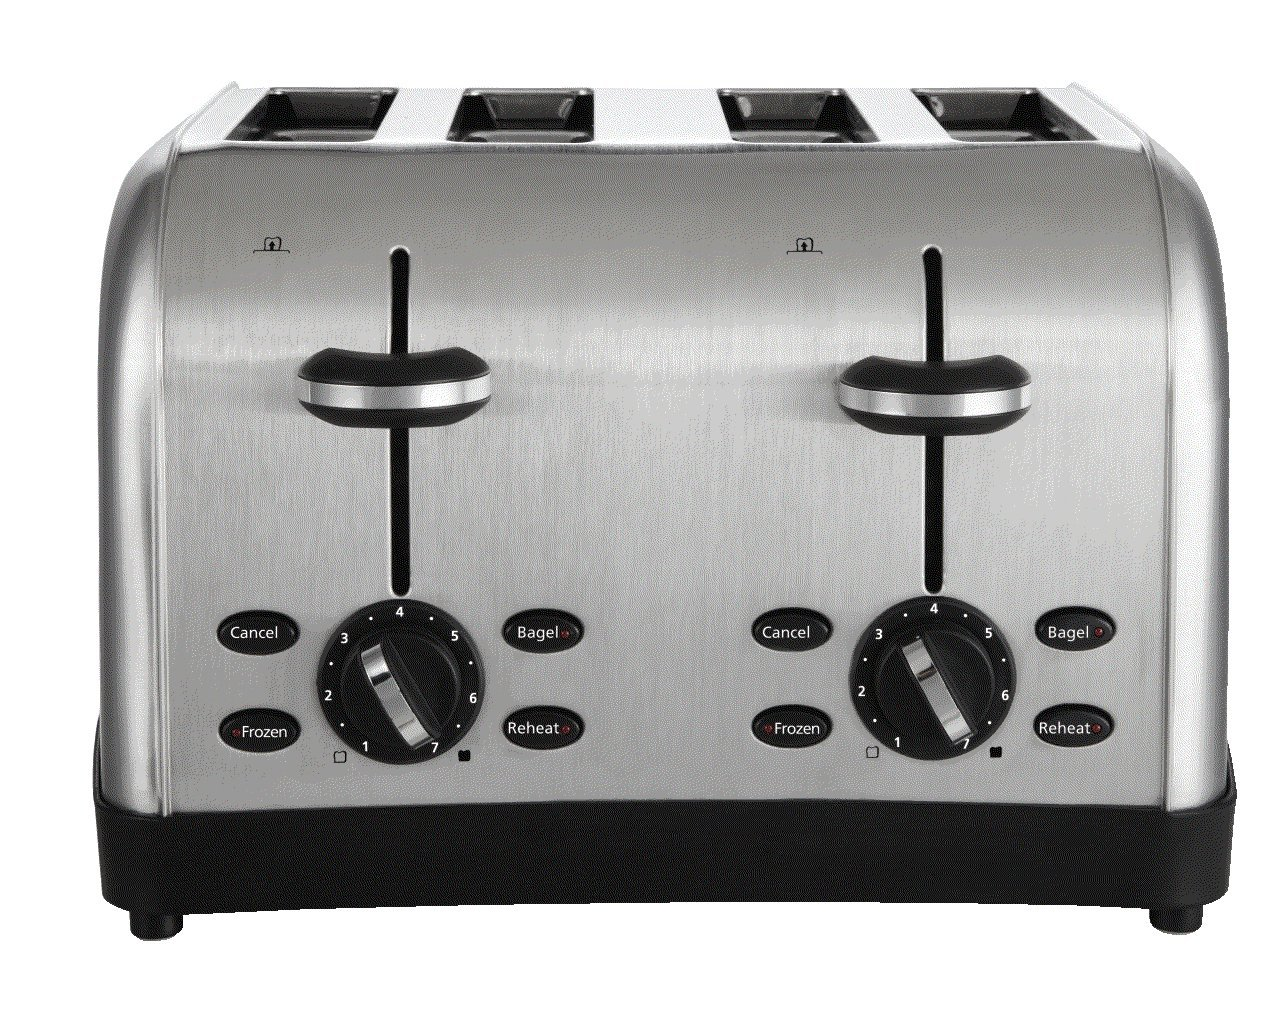 5. Oster 4-Slice Toaster, Brushed Metal (TSSTTRWF4S-SHP)